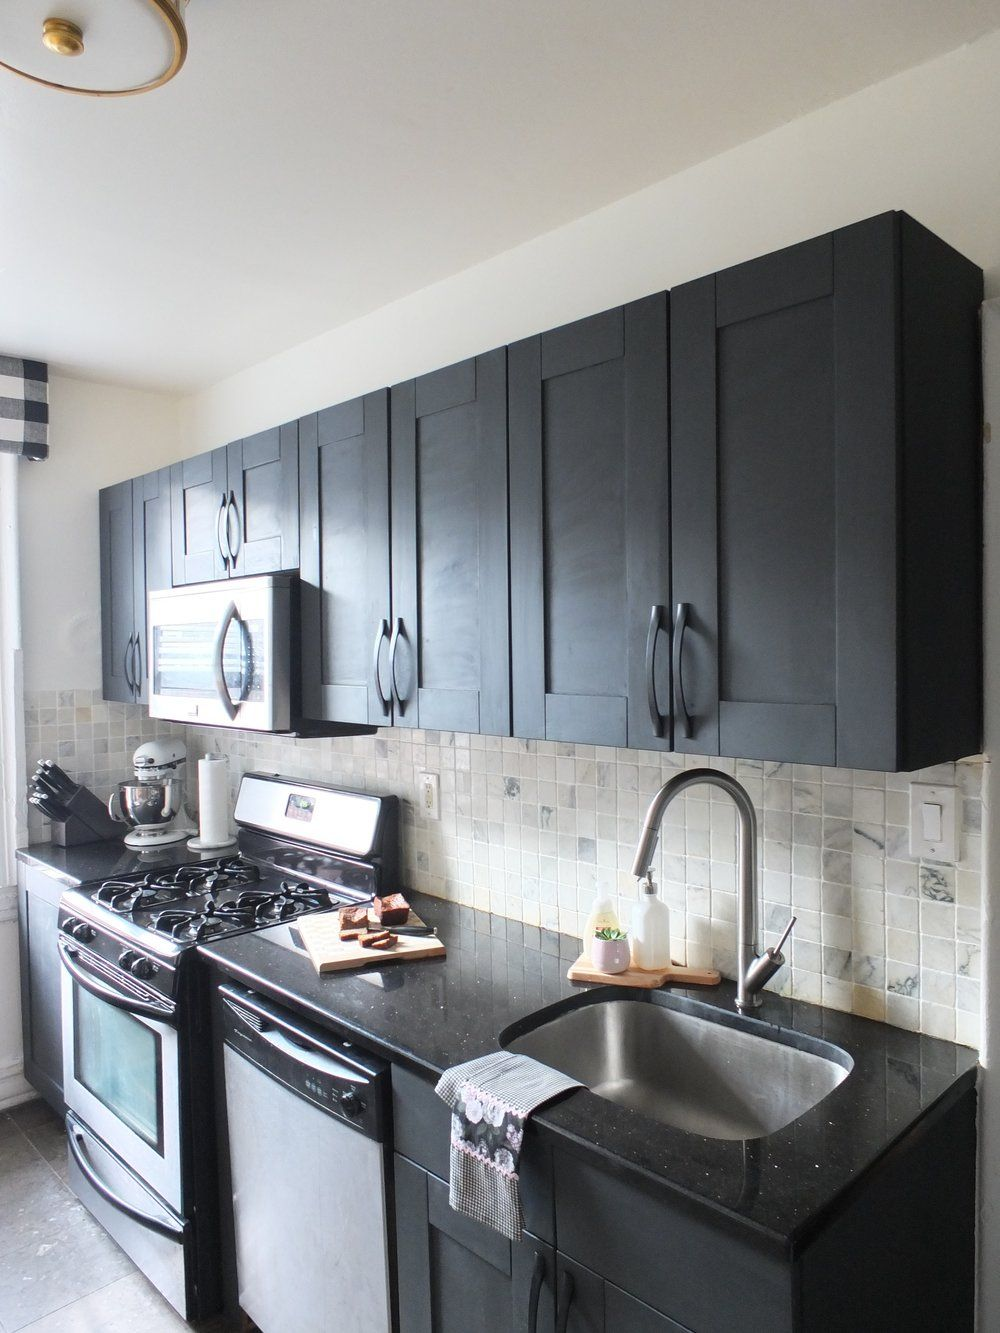 Charcoal Gray Chalk Painted Cabinets With Black Quartz Counters And A White Marble Back Chalk Paint Kitchen Cabinets Small Kitchen Cabinets Chalk Paint Kitchen